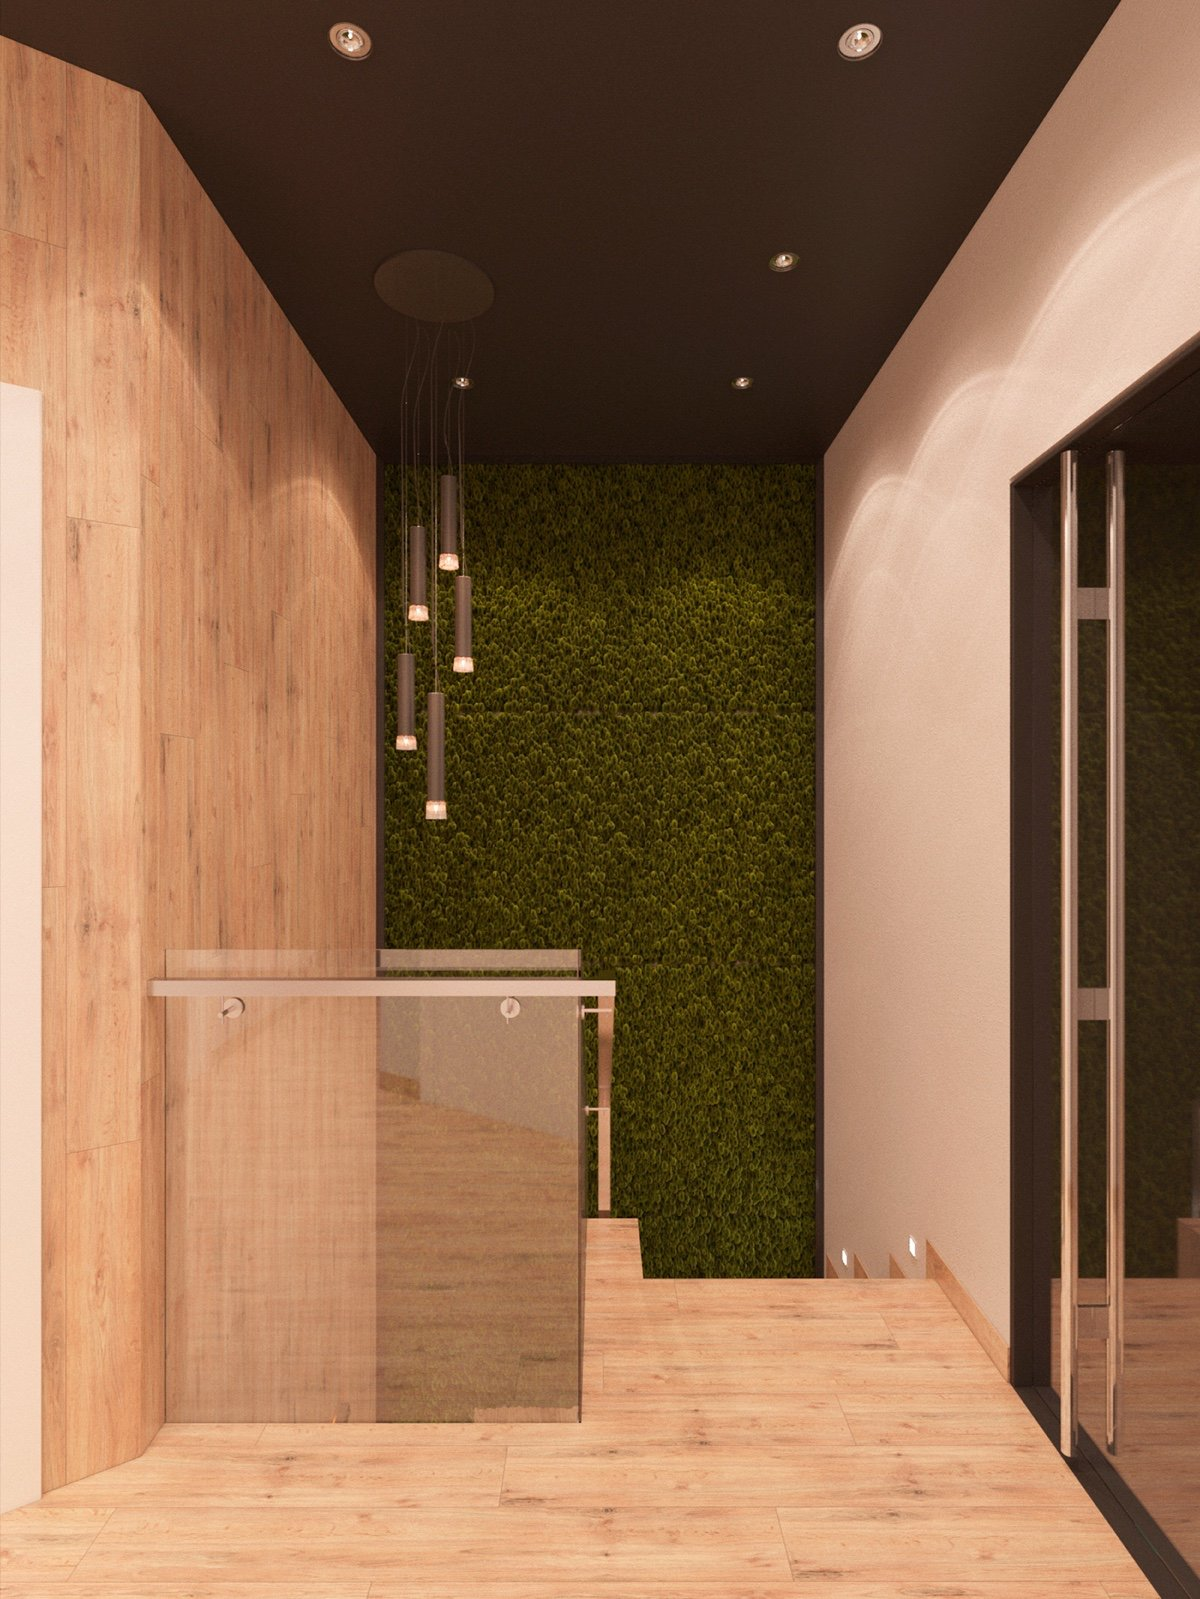 Natural Plant Wall - 3 modern apartment interiors that masterfully demonstrate how to use red as an artistic accent